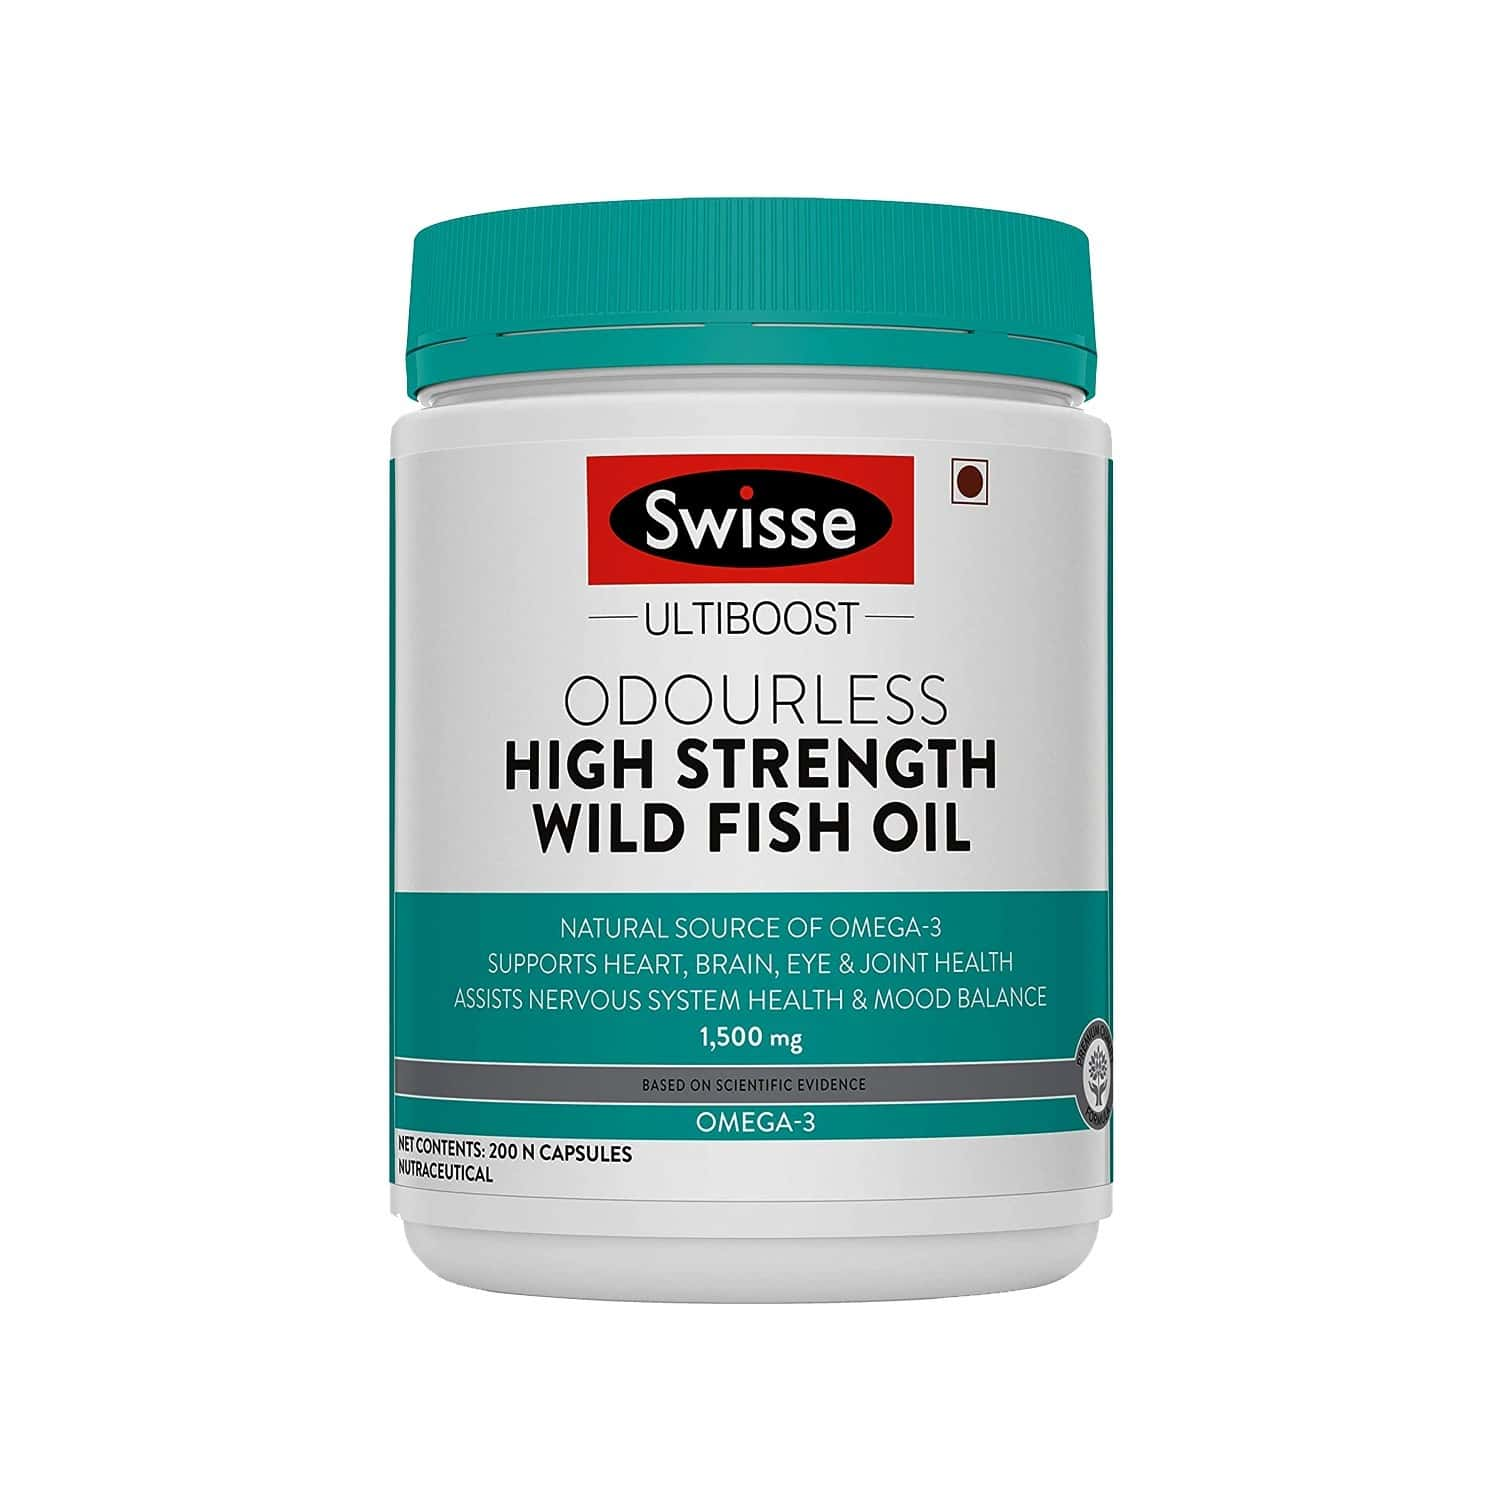 Swisse Ultiboost Odourless High Strength Wild Fish Oil With (1500 Mg) Omega 3 For Heart Brain Joints And Eyes - 200 Capsules